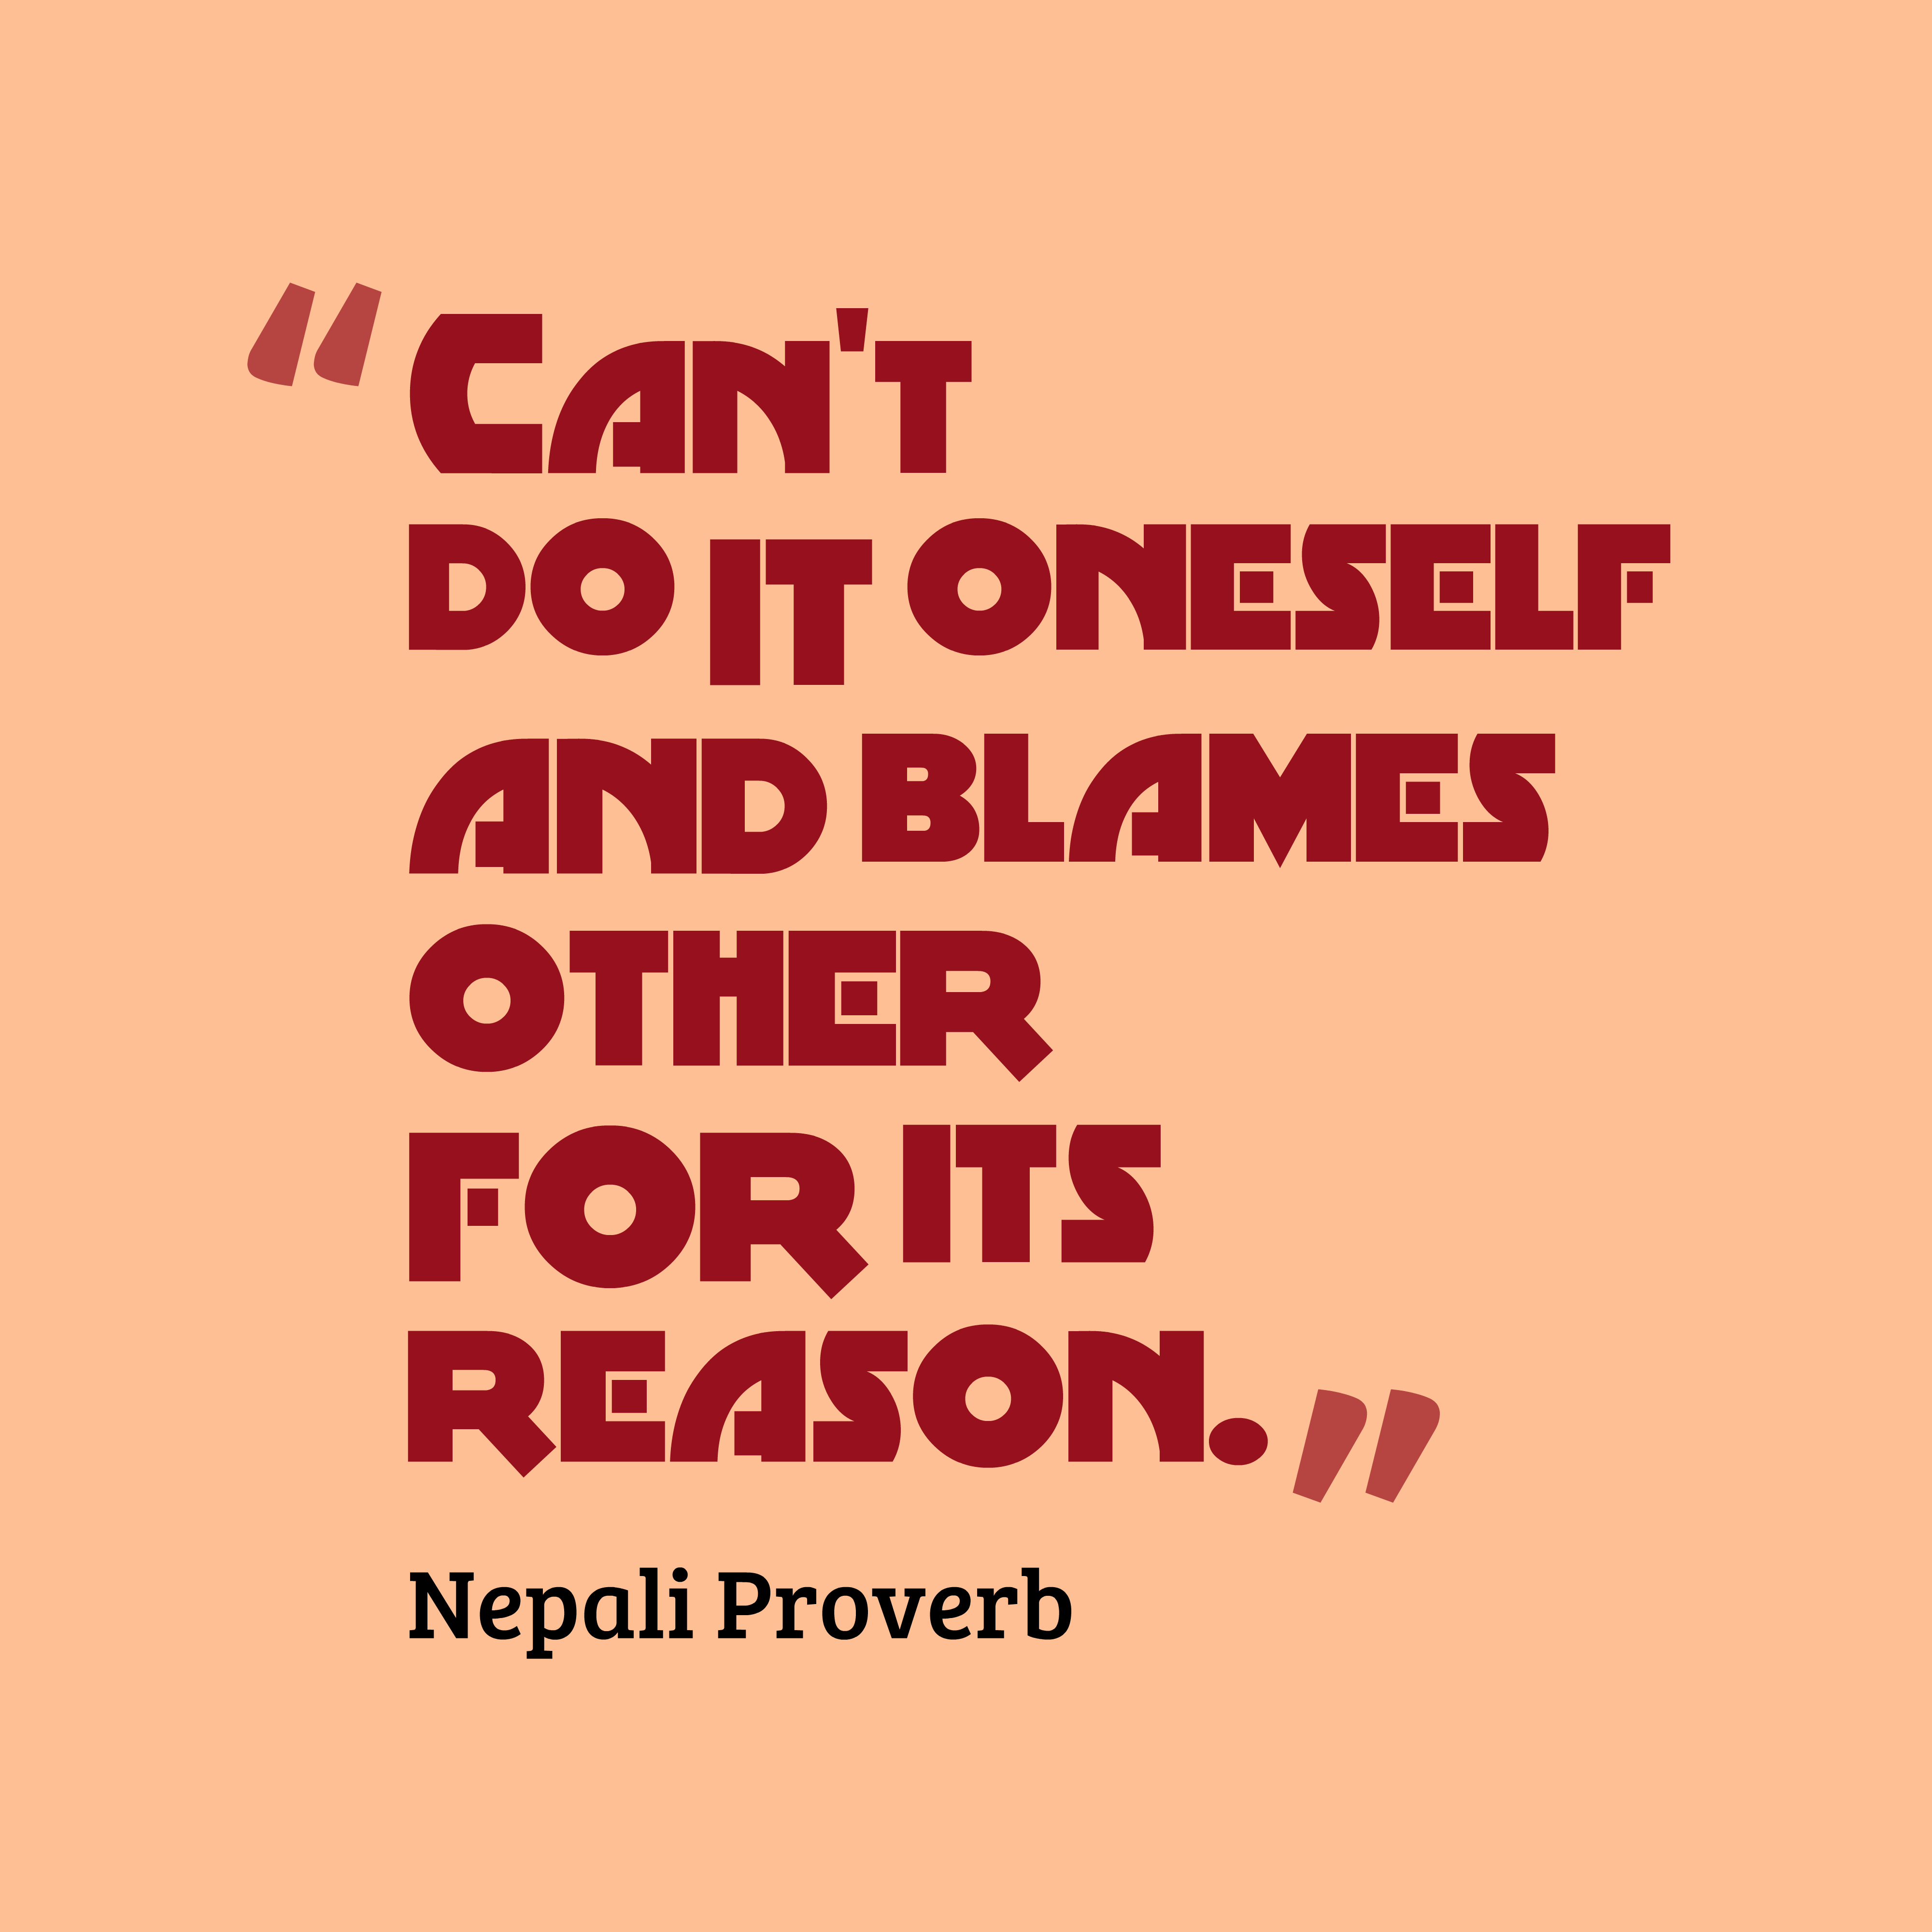 Funny Love Quotes In Nepali : high resolution quotes picture from Nepali proverb about reason